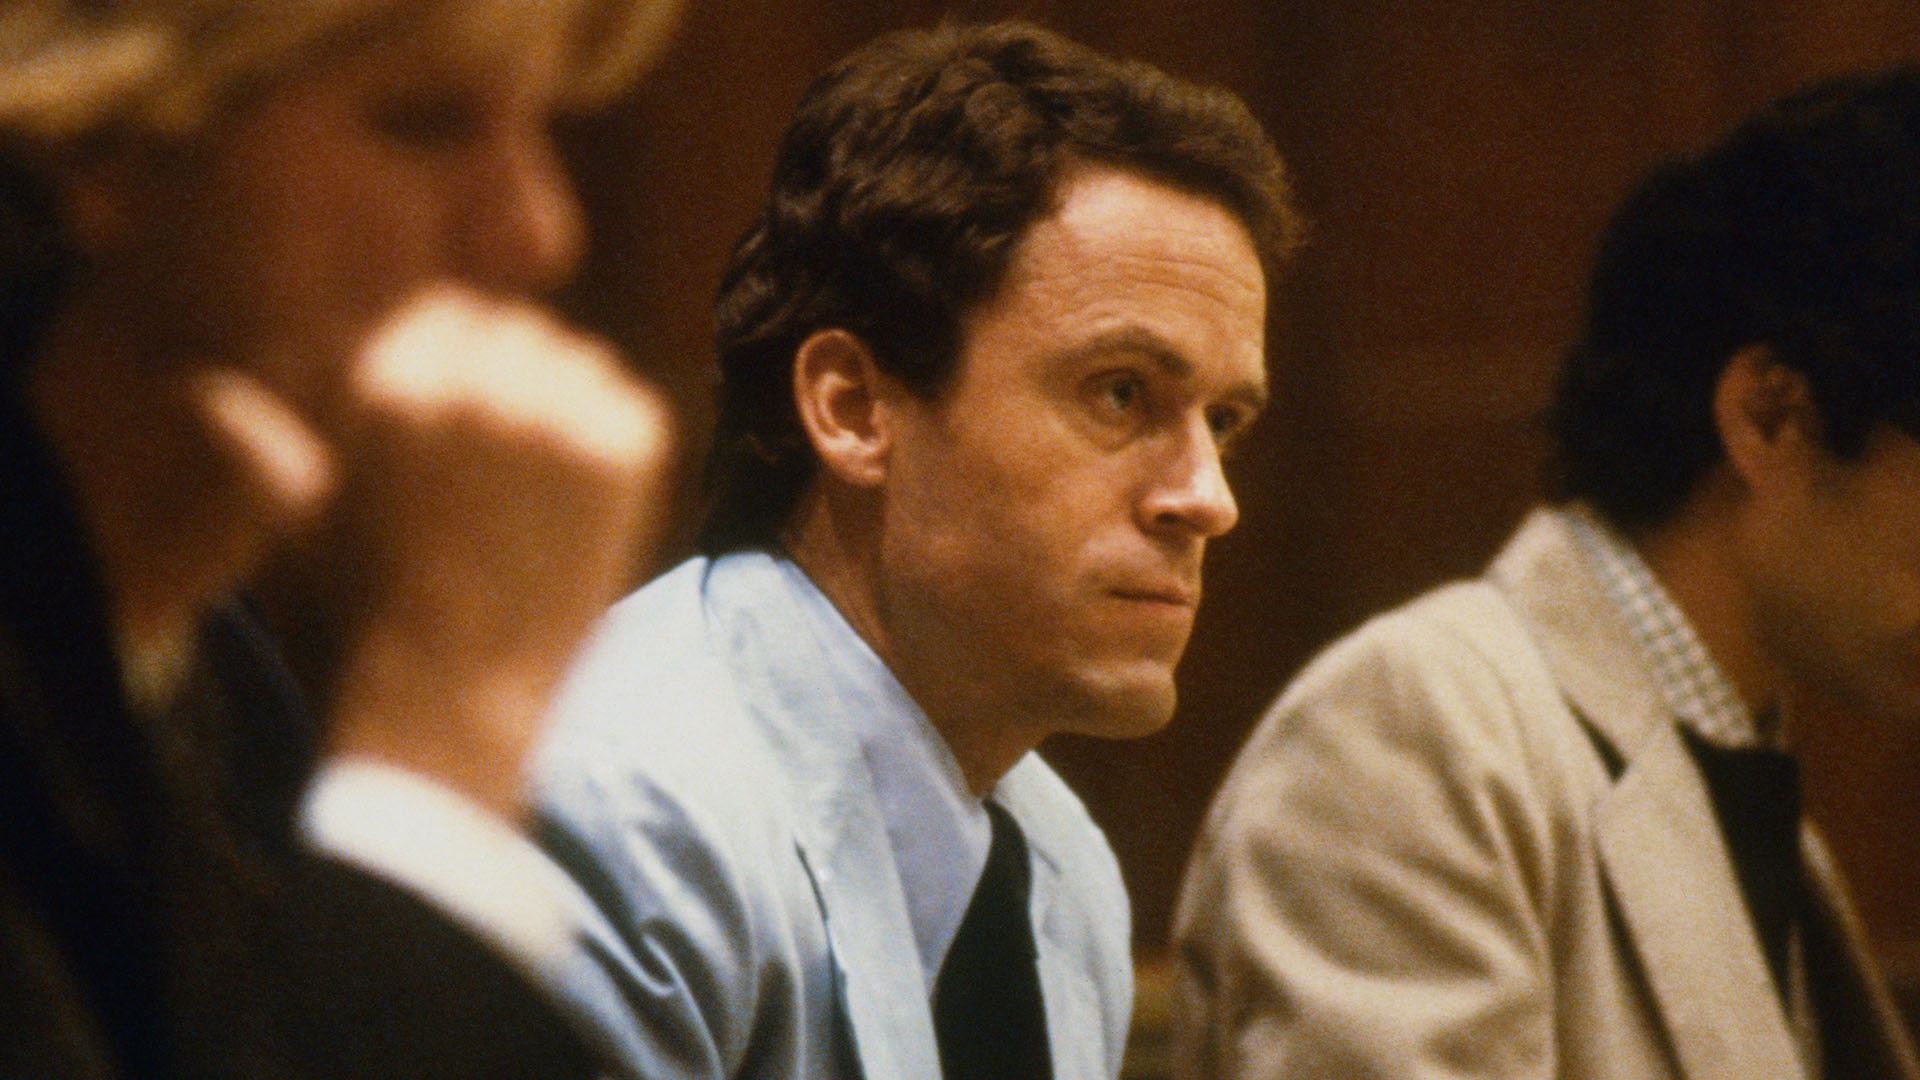 The 5 Most Bizarre Moments of Ted Bundy's Murder Trials